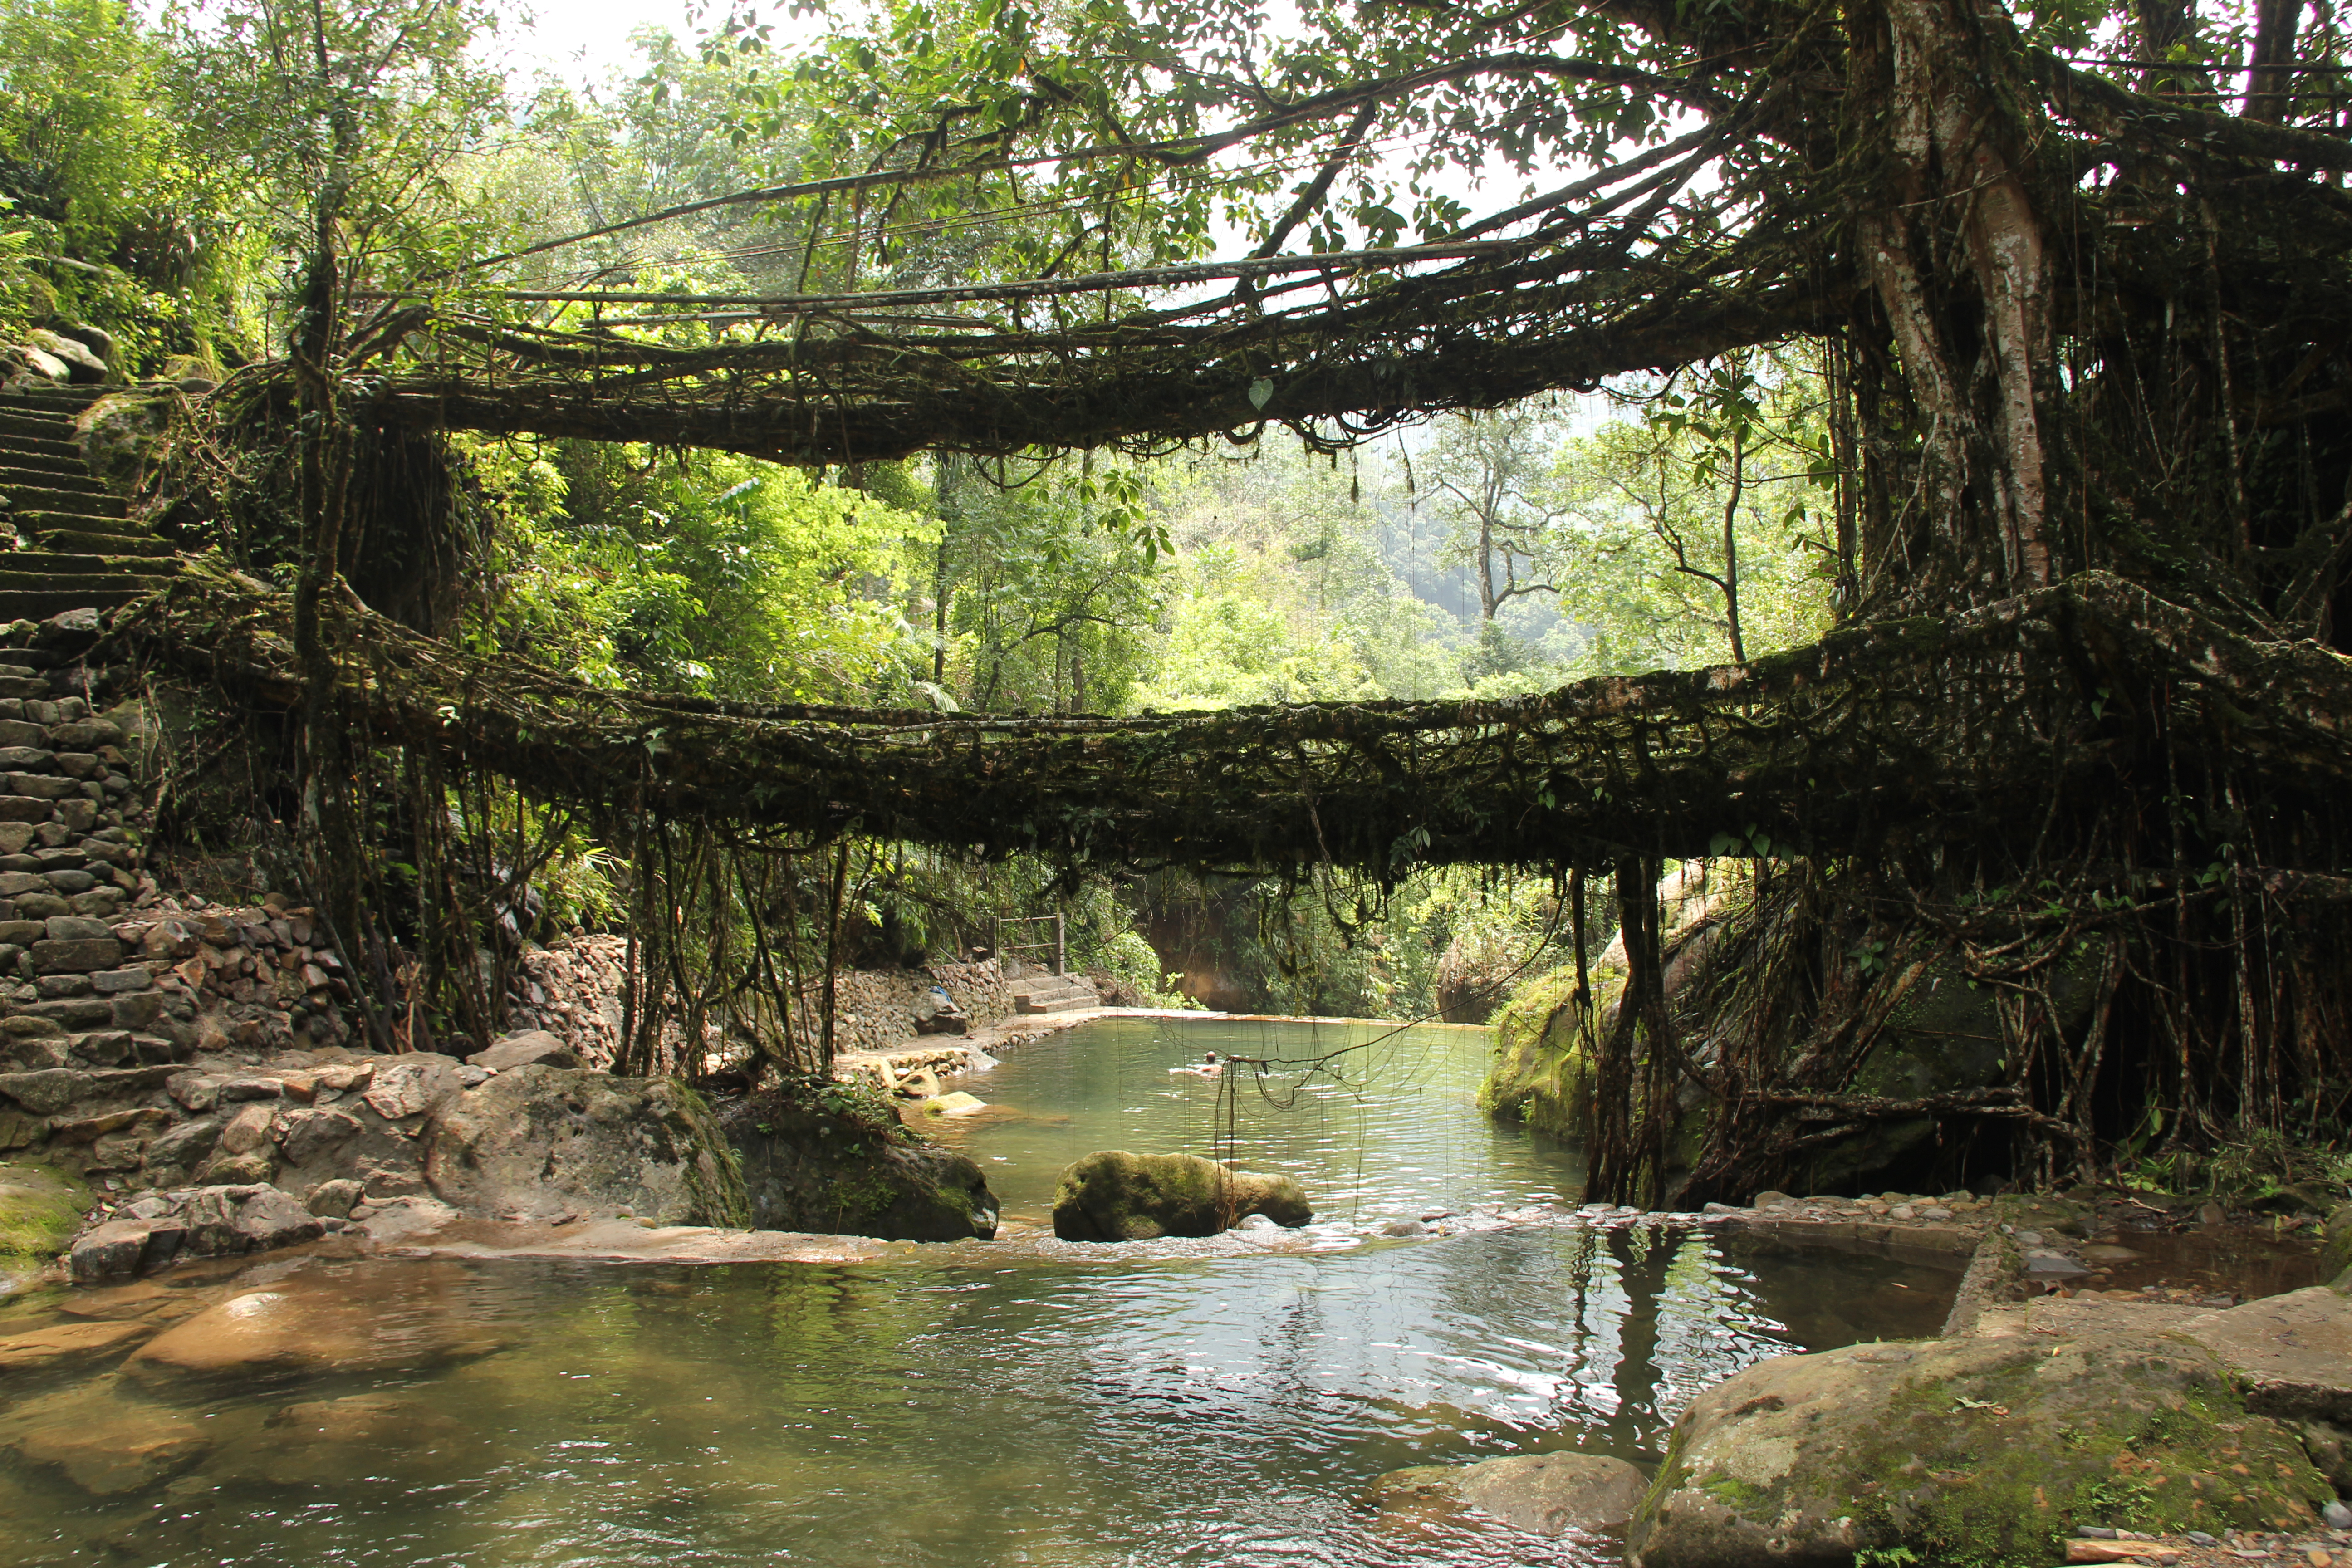 Living Root Bridges of Cherapunjee